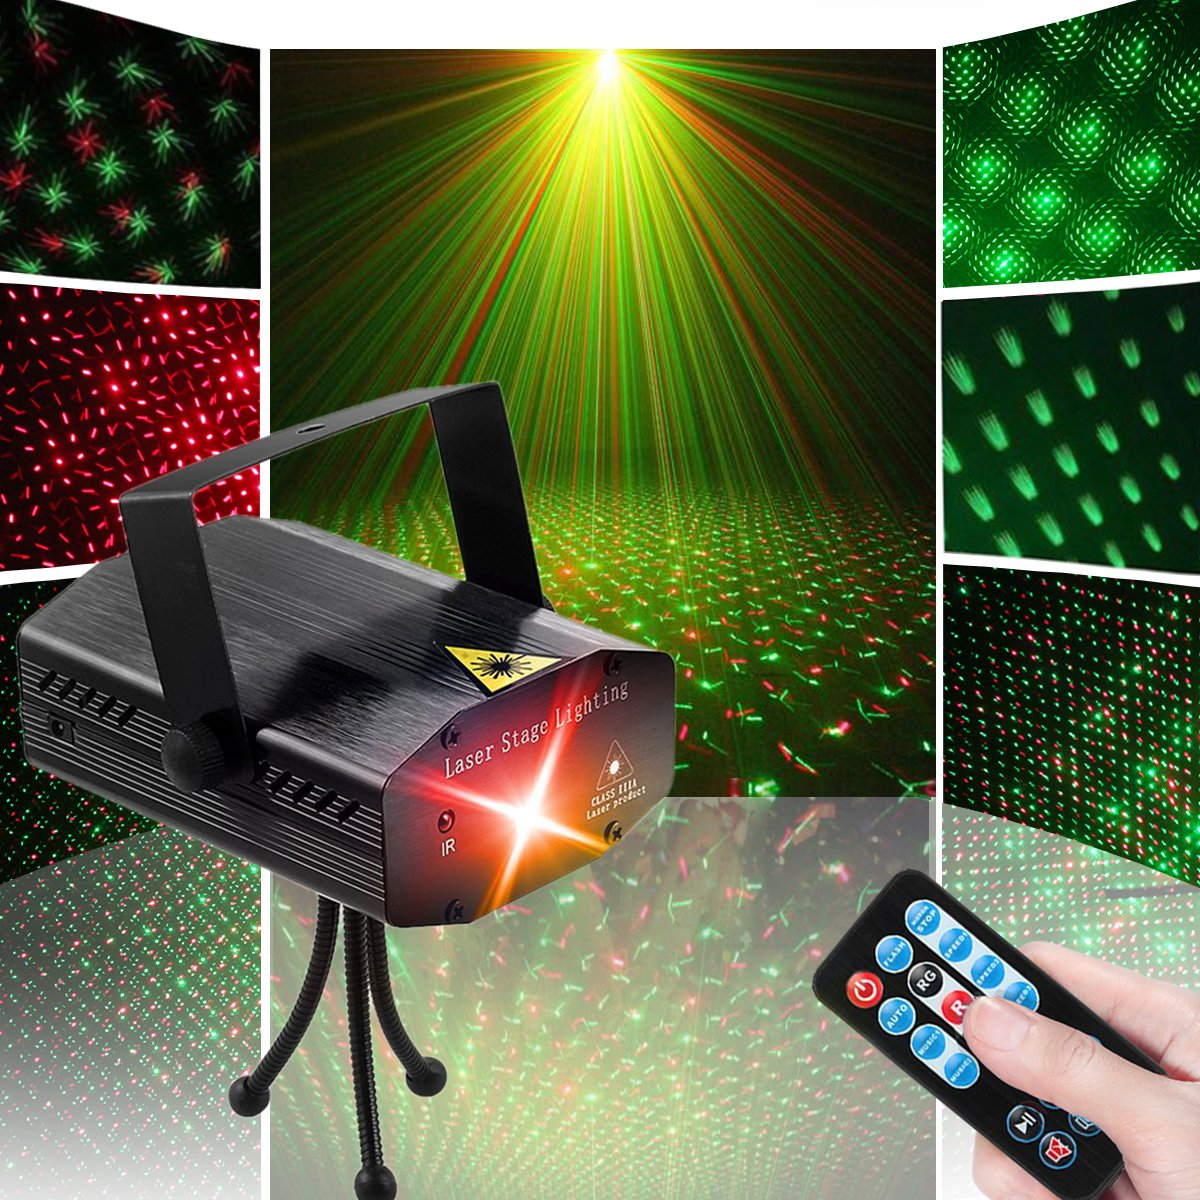 LED Disco DJ Party Laser Lights, Sibaok Mini Auto Flash 7 RG Color Stage Strobe Lights Sound Activated for Parties Room Show Birthday Party Wedding Dance Lighting with Remote Control, Black by Sibaok